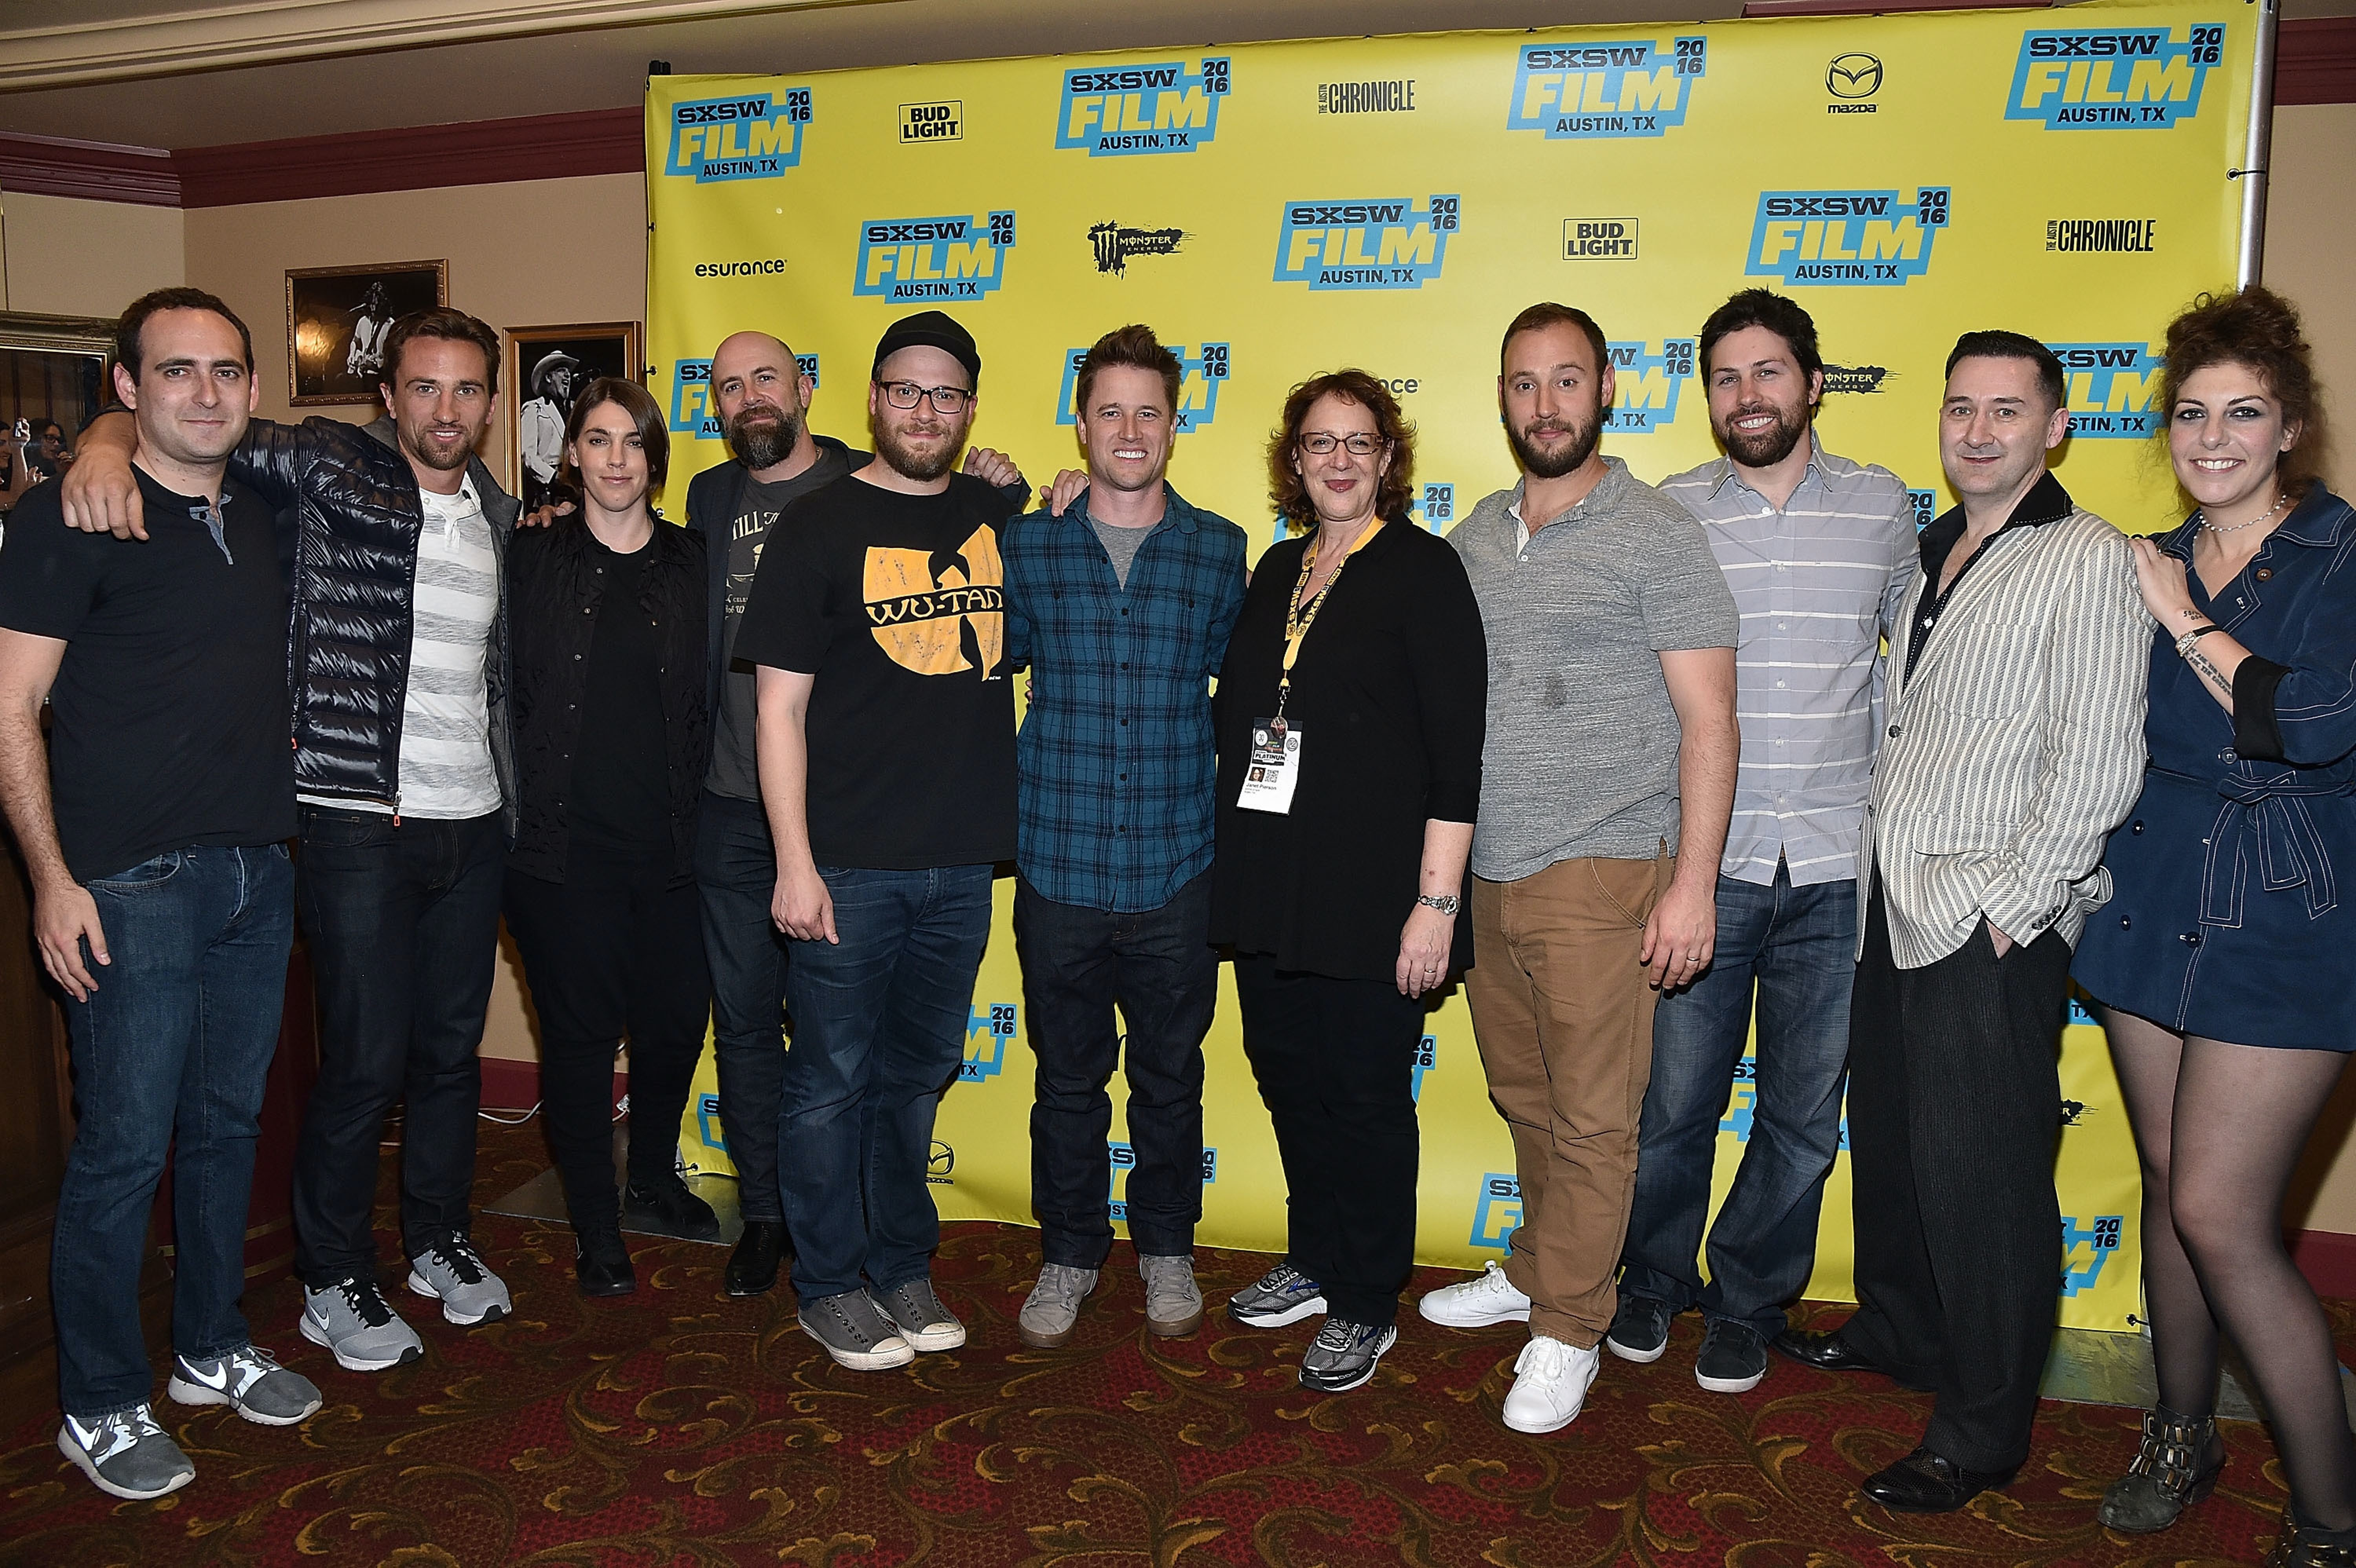 AUSTIN, TX - MARCH 14: The cast and crew of 'Sausage Party (Work In Progress)' attend the premiere of their film during the 2016 SXSW Music, Film + Interactive Festival at Paramount Theatre on March 14, 2016 in Austin, Texas.  (Photo by Mike Windle/Getty Images for SXSW)